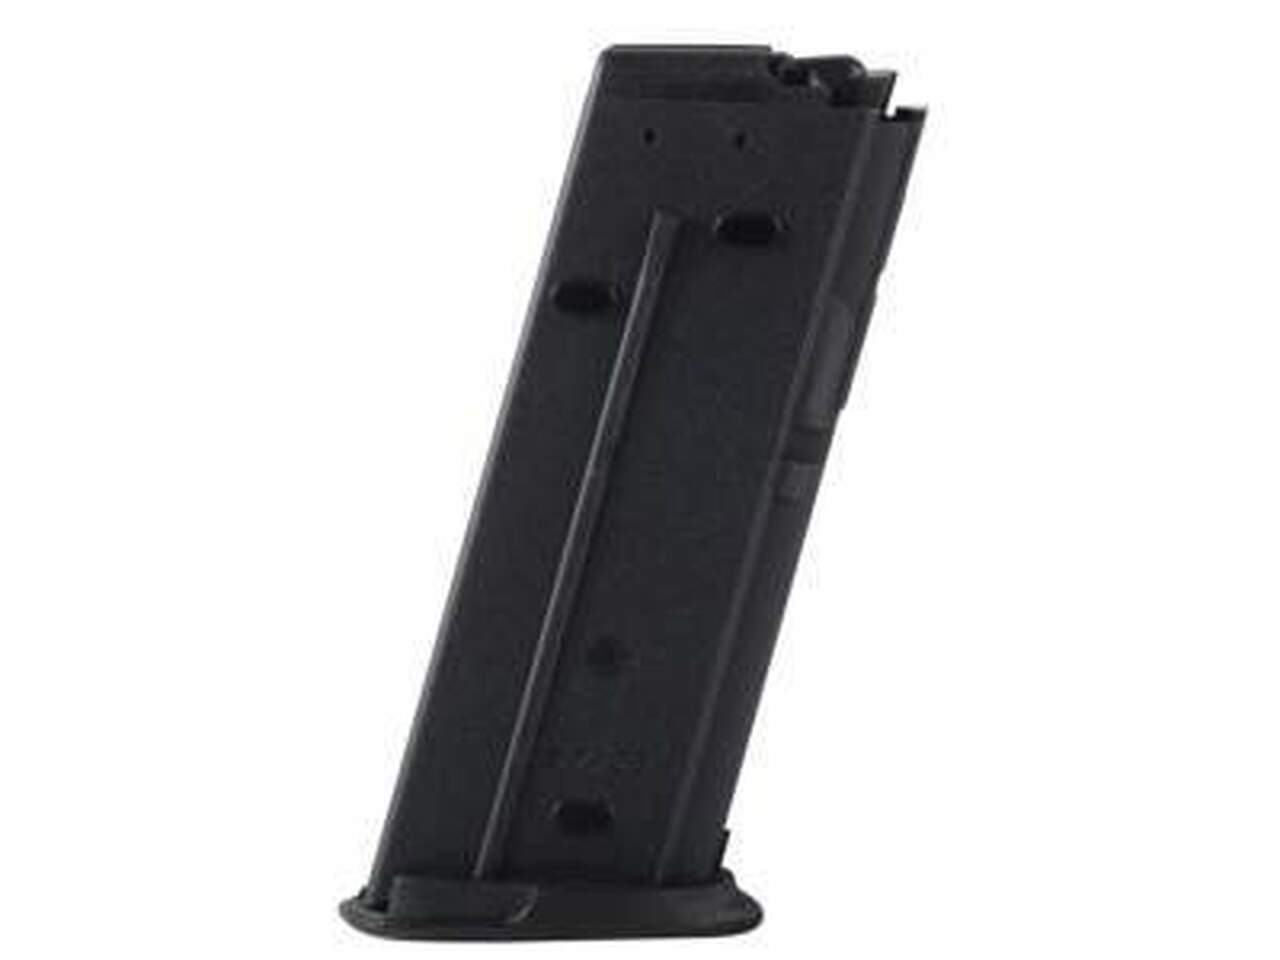 5.7mmx28mm Mags